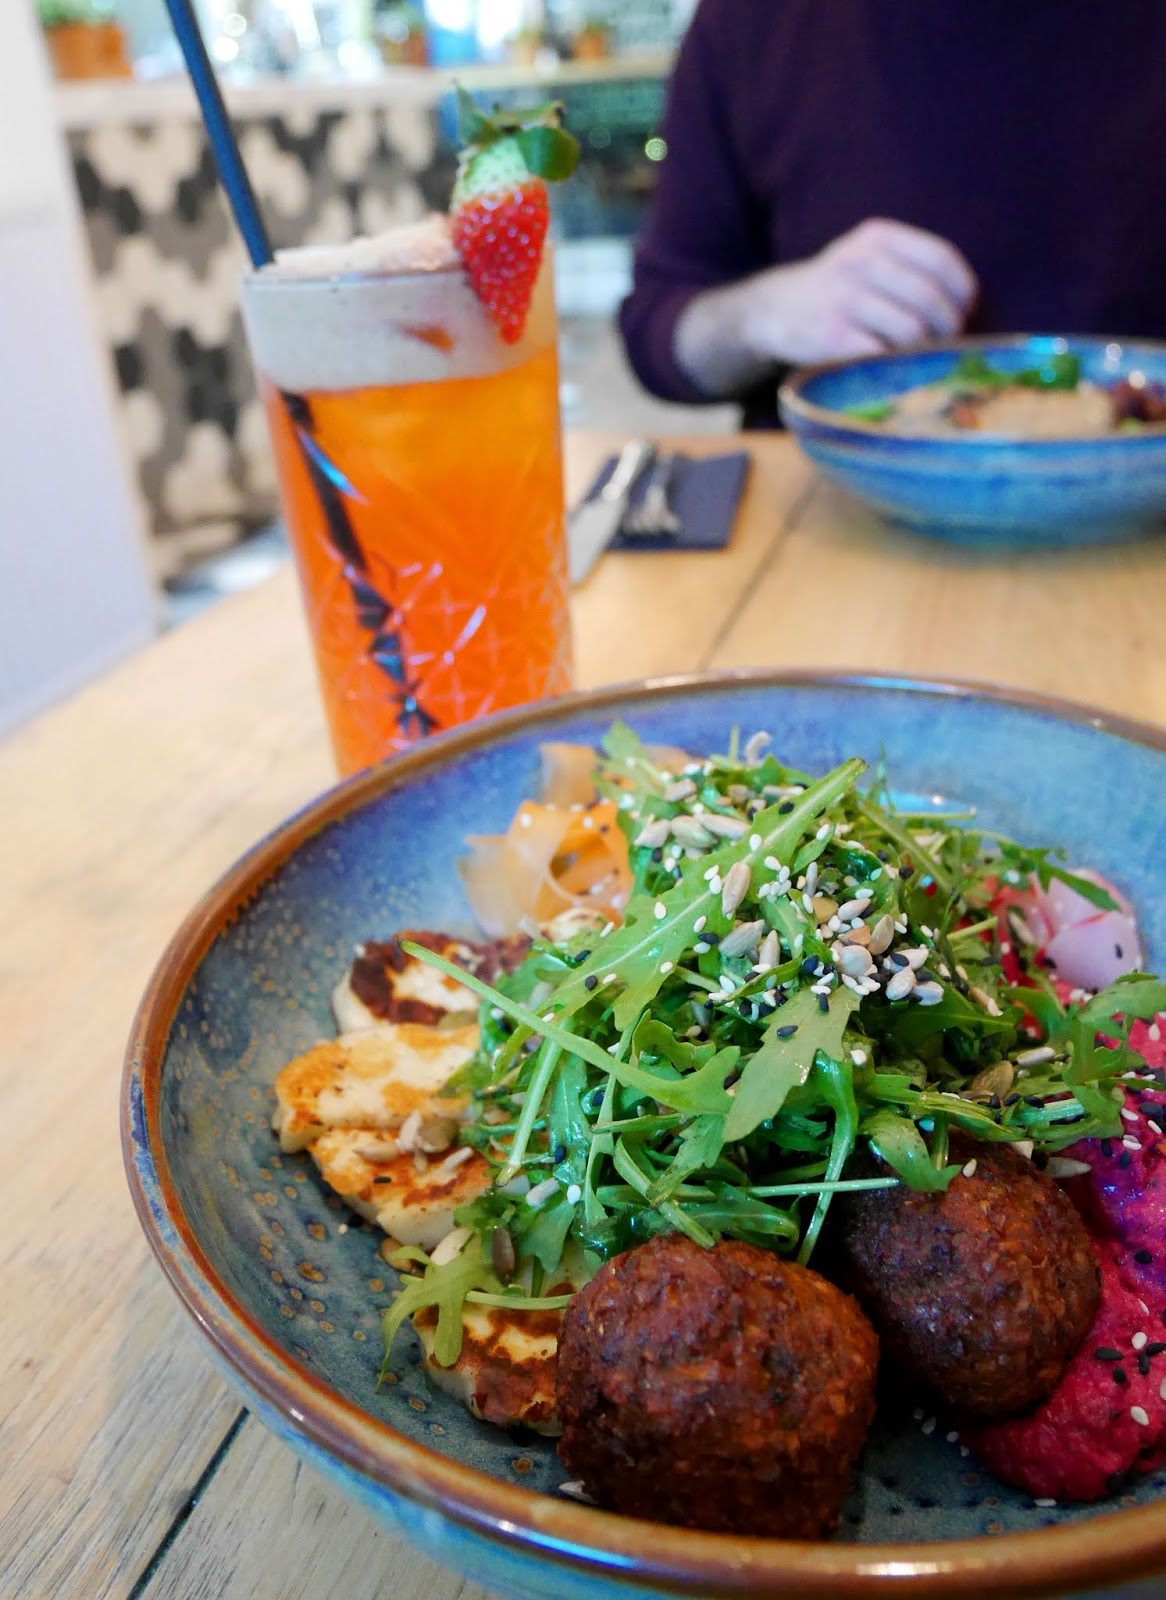 Strawbazzle fresh juice and a Falafel and Halloumi bowl at The Skinny Kitchen in Canterbury, Kent